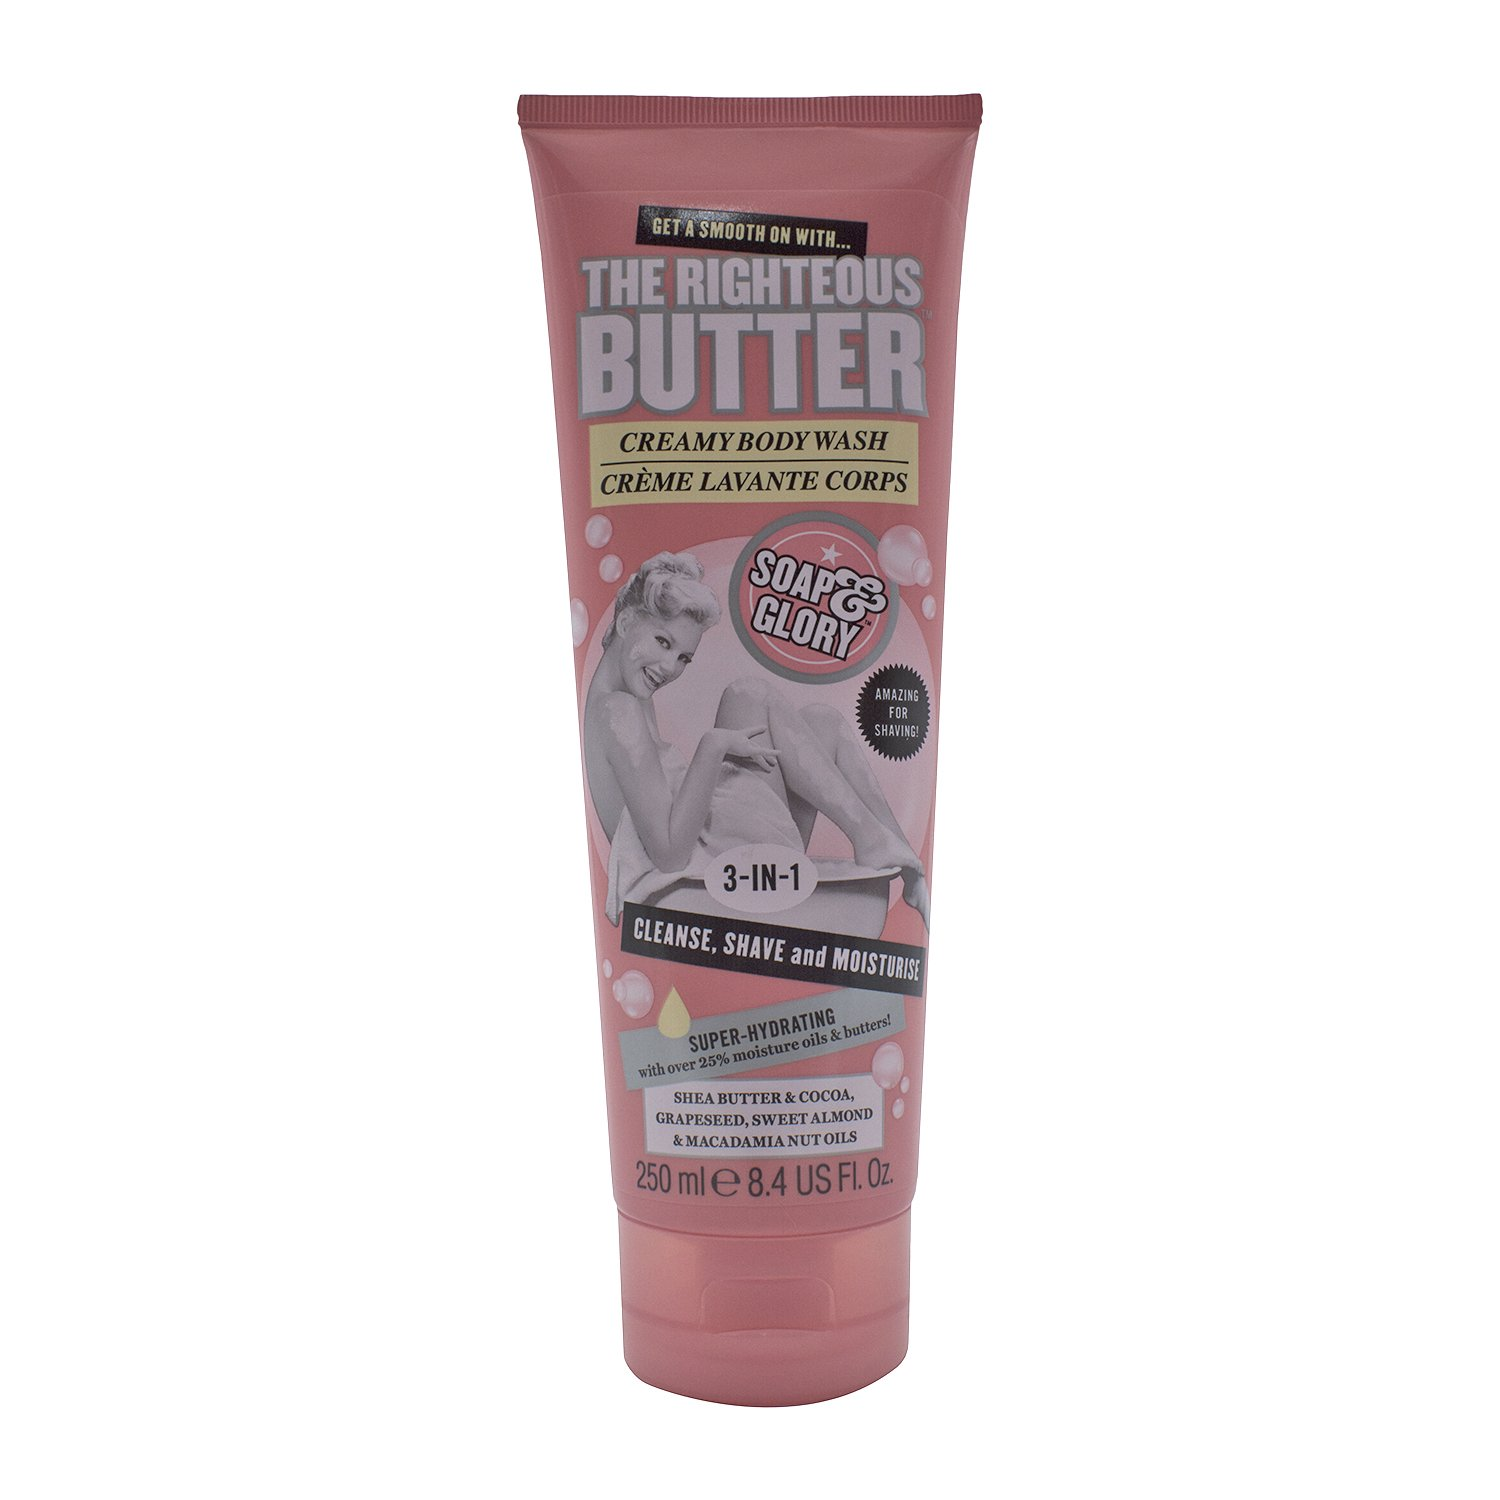 Soap and Glory The Righteous Butter 3-in-1 Creamy Shower Gel 250ml Soap & Glory